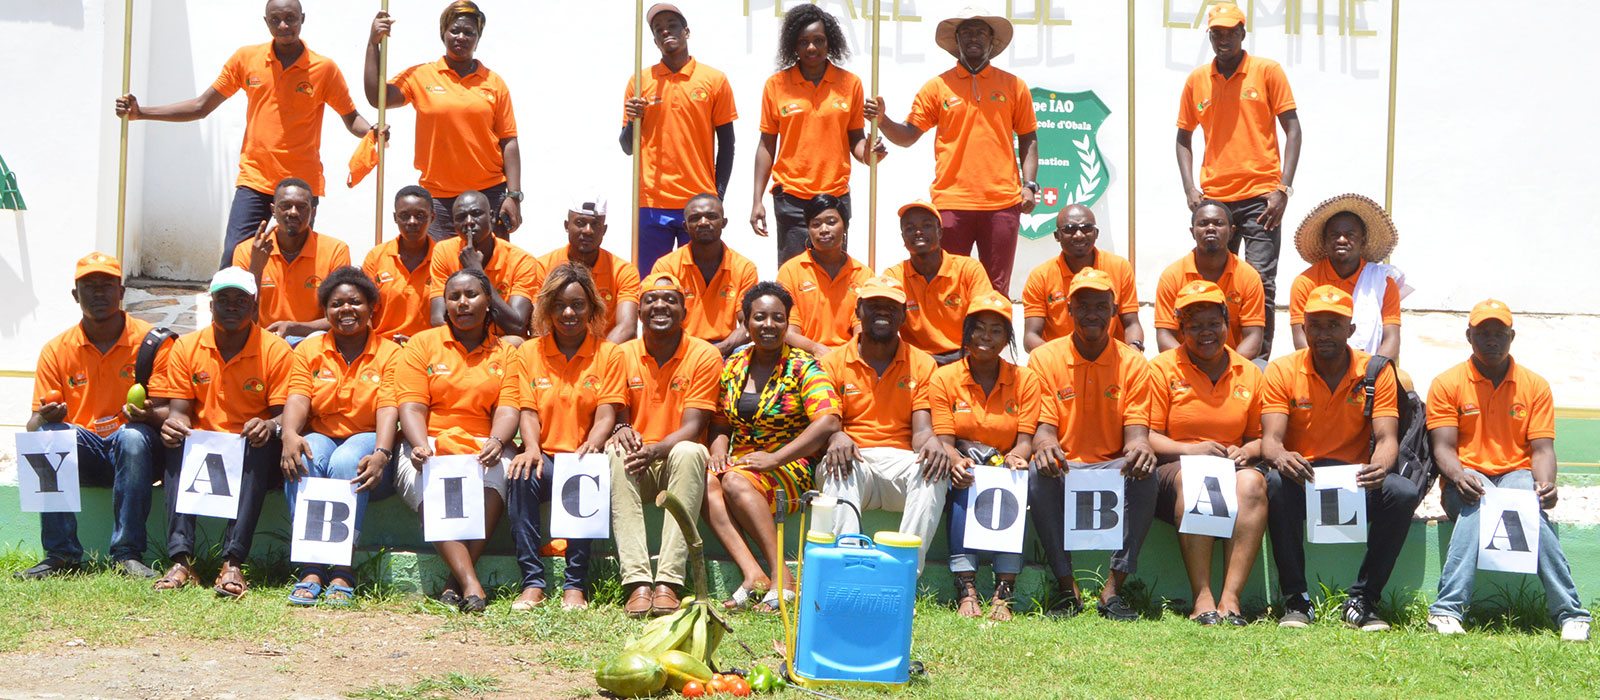 RECRUITING AND EMPOWERING YOUTH IN AGRIBUSINESS